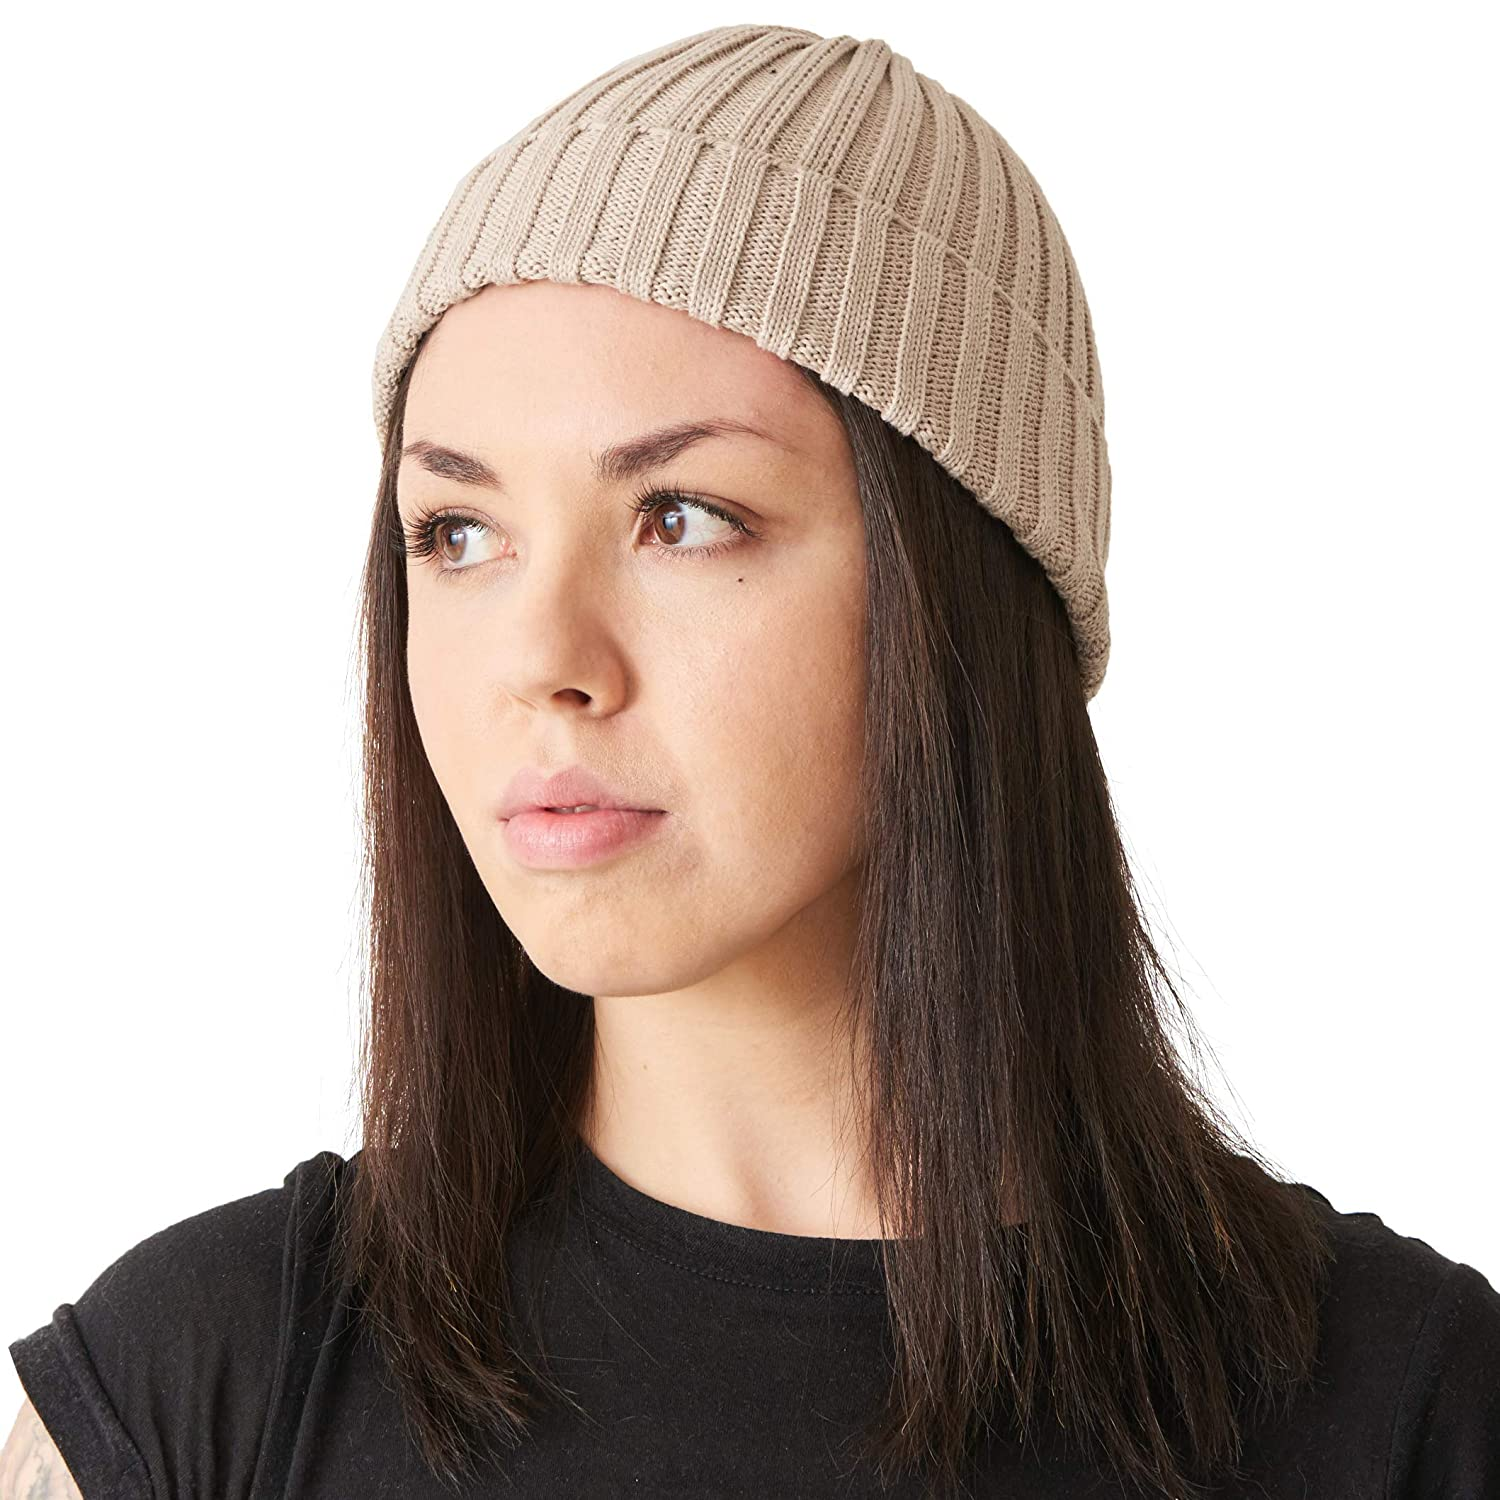 Amazon.com  Mens Fisherman s Beanie Hat - 100% Cotton Ribbed Slouch Cap  Women Chemo Knit Winter Summer Simple Classic Design Beige  Clothing 49ece4031dc